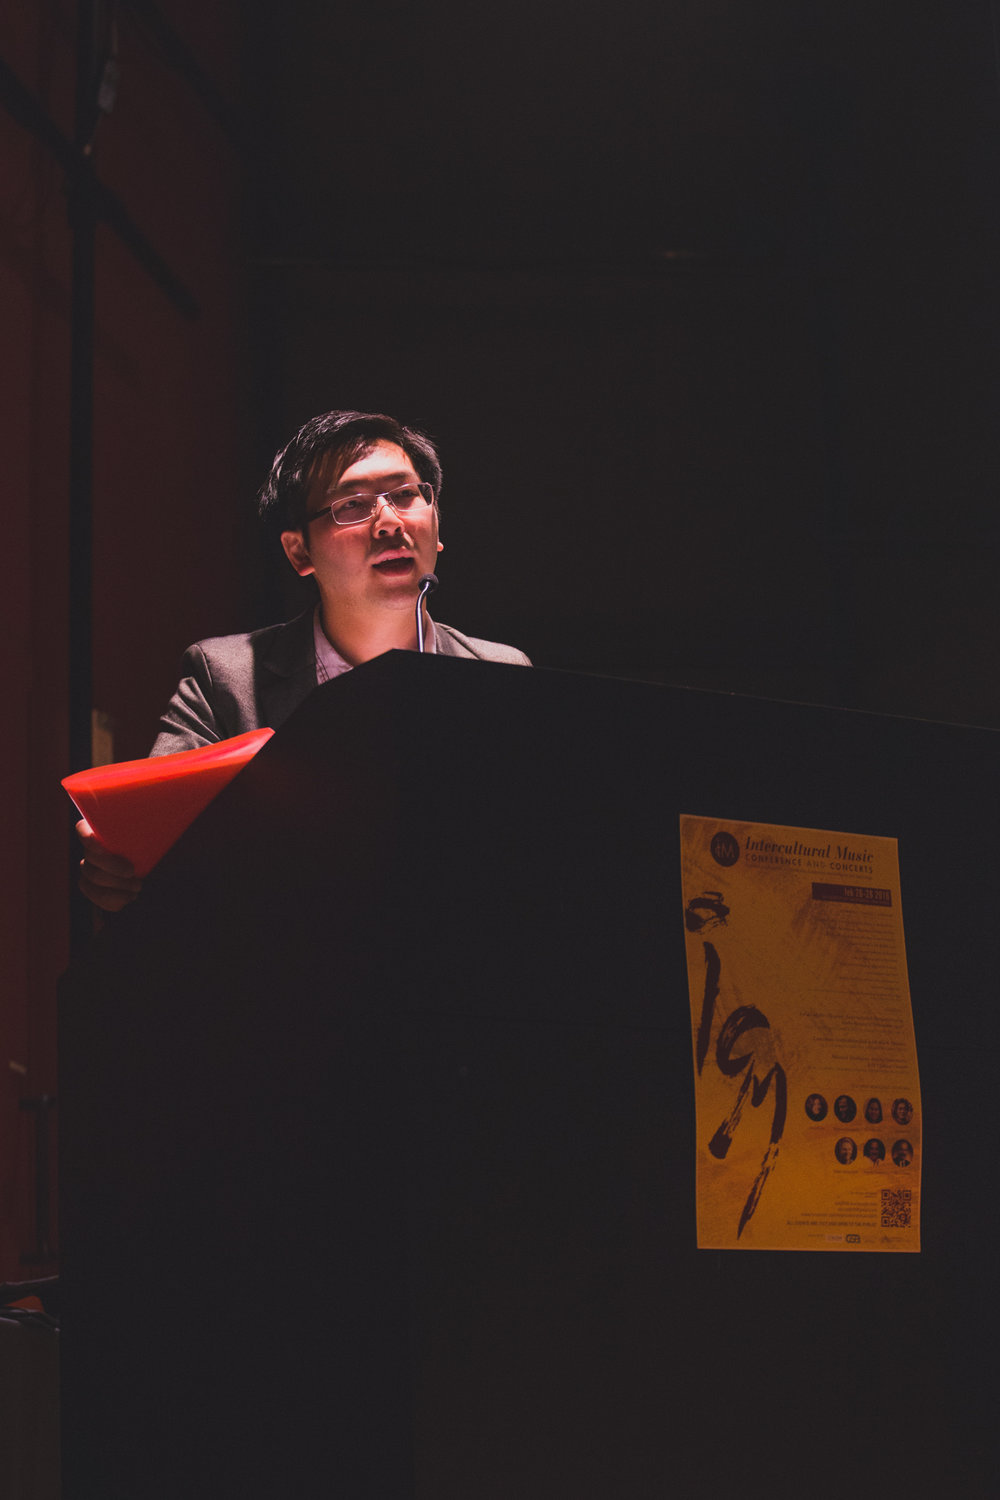 Siu Hei delivering the opening remarks of the  Intercultural Music (IcM) Conference and Concerts  (2016), in which he was chief curator and coordinator. Photo credit to  Leticia Ng .